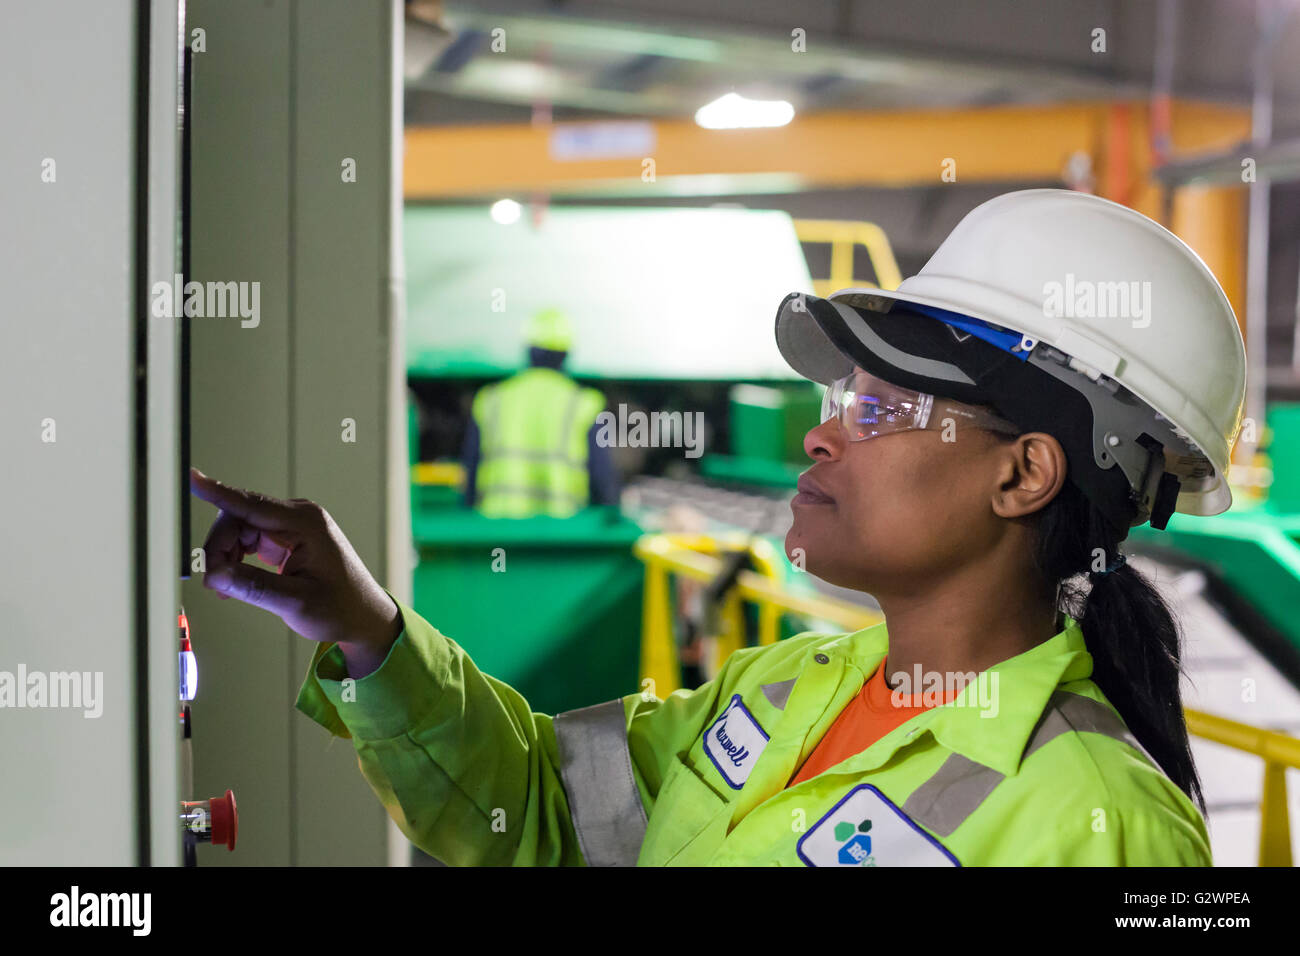 Southfield, Michigan - A worker operates a control panel for machinery at the ReCommunity materials recovery facility. - Stock Image